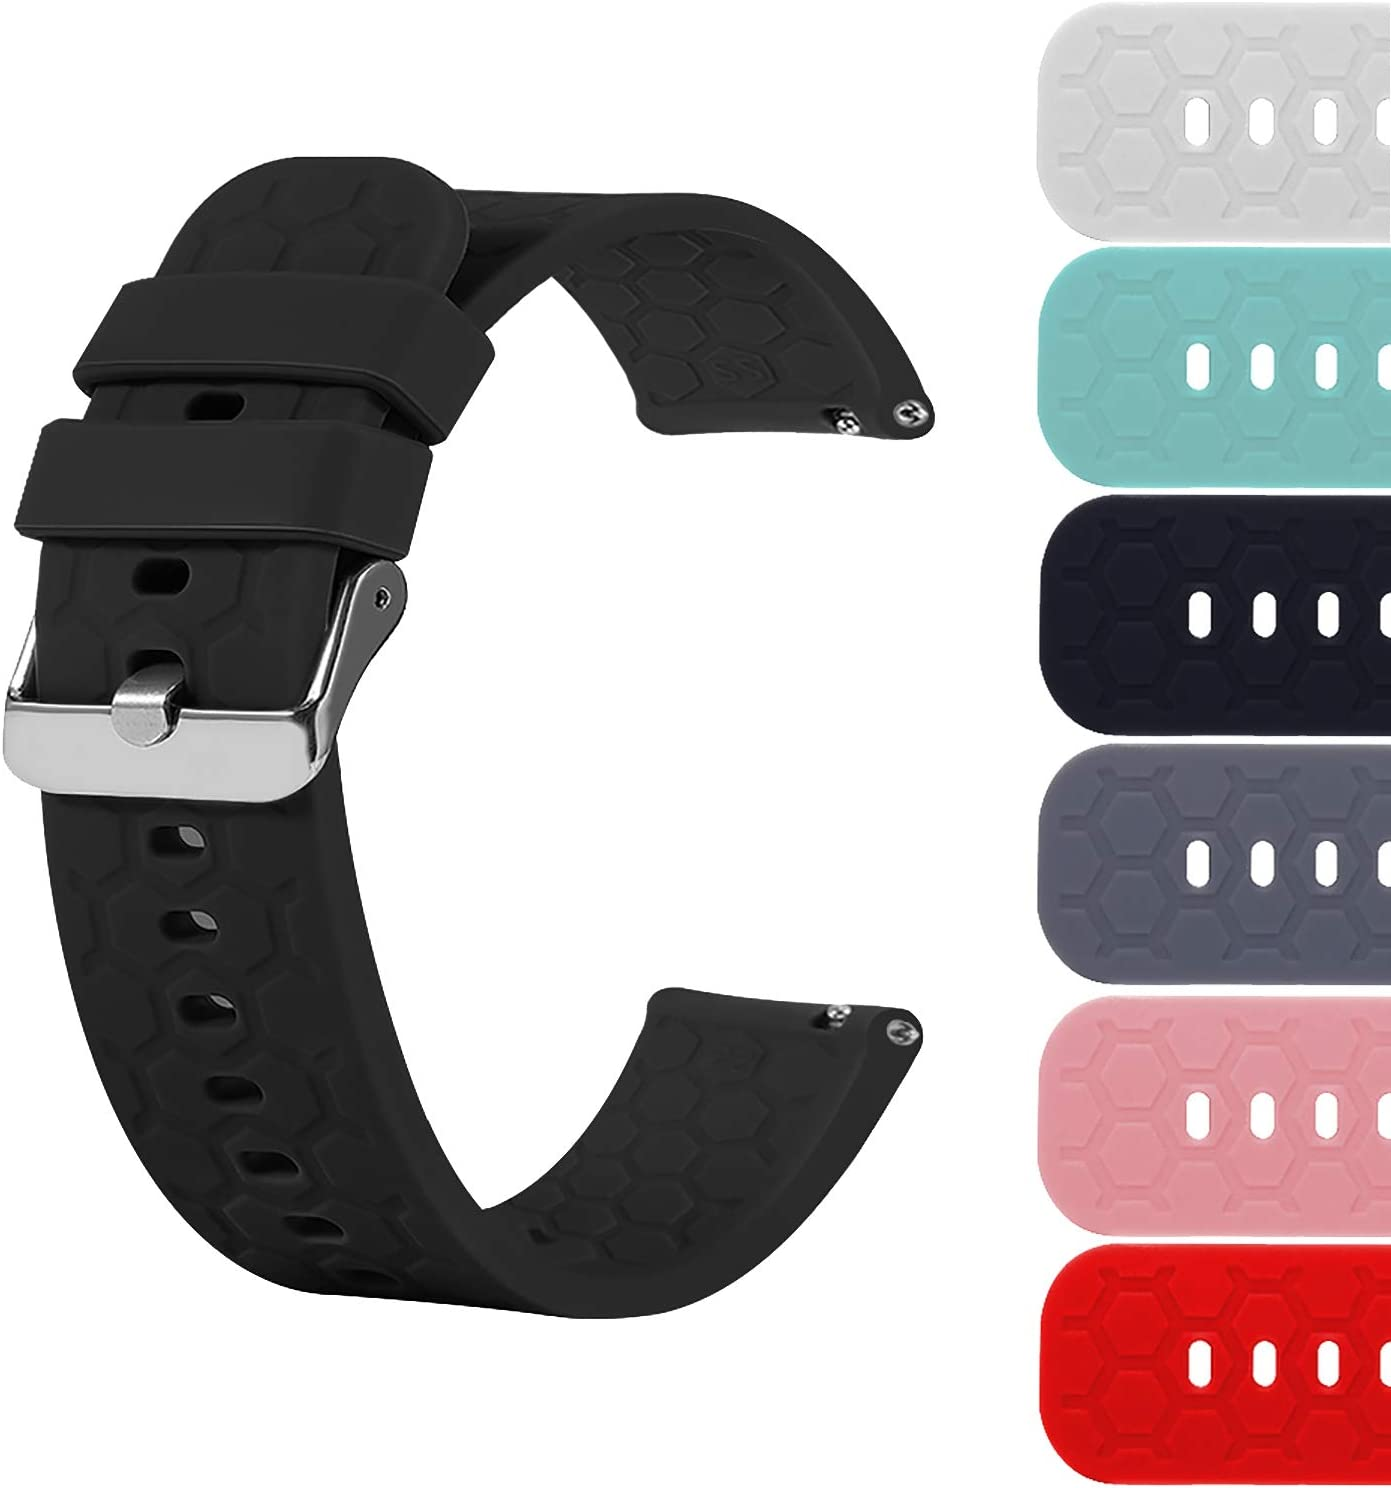 18mm San Francisco Mall 20mm New product!! 22mm Width Silicone Wristband Release Quick Replacemen